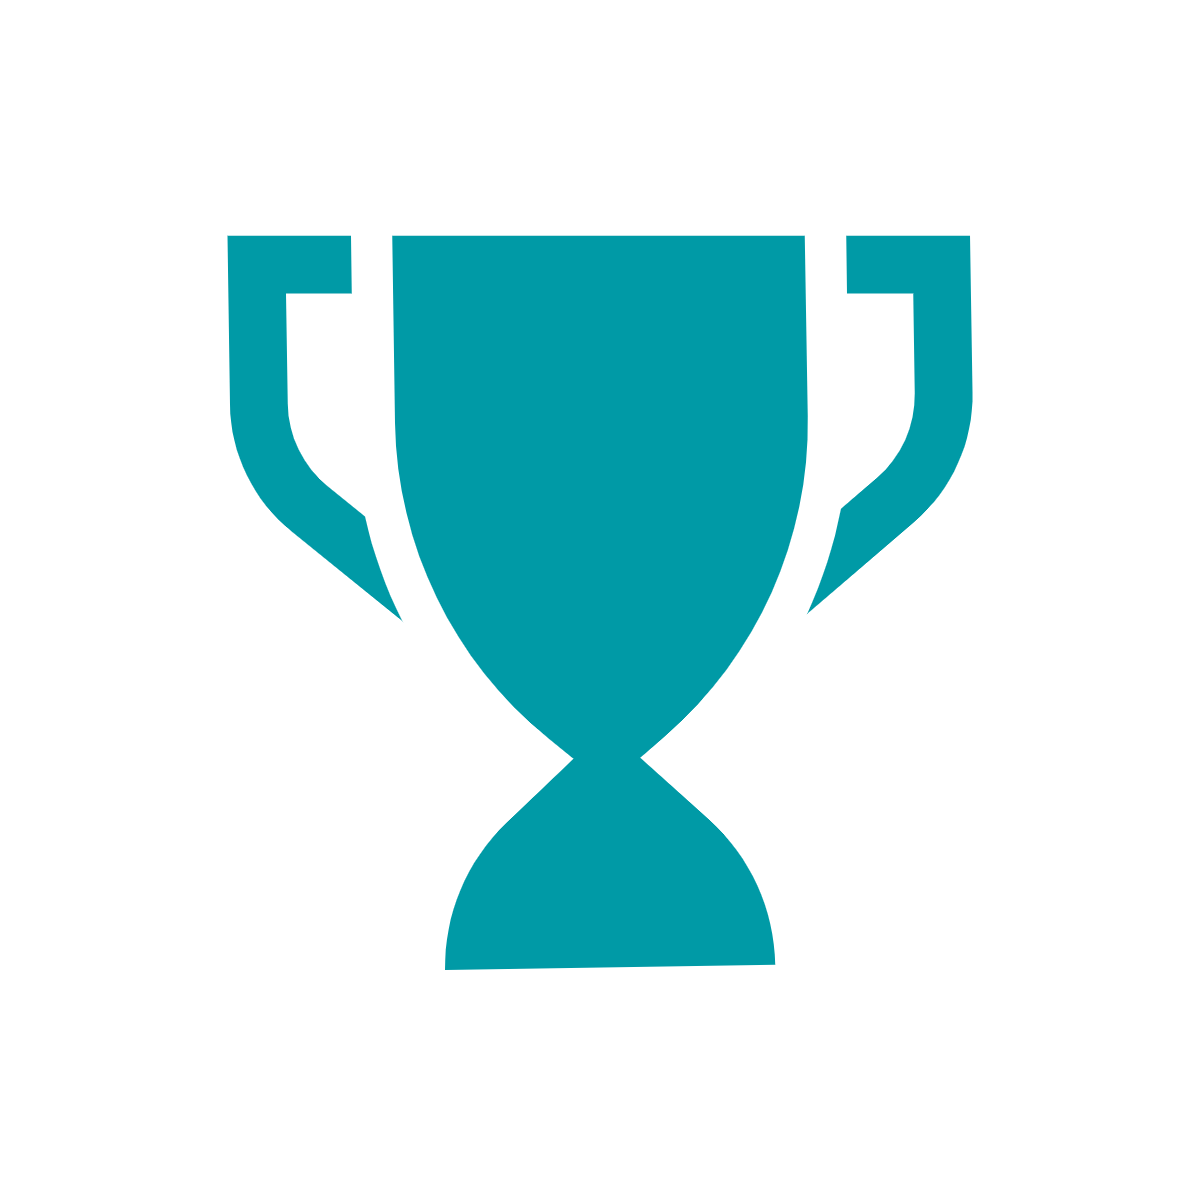 Green trophy icon